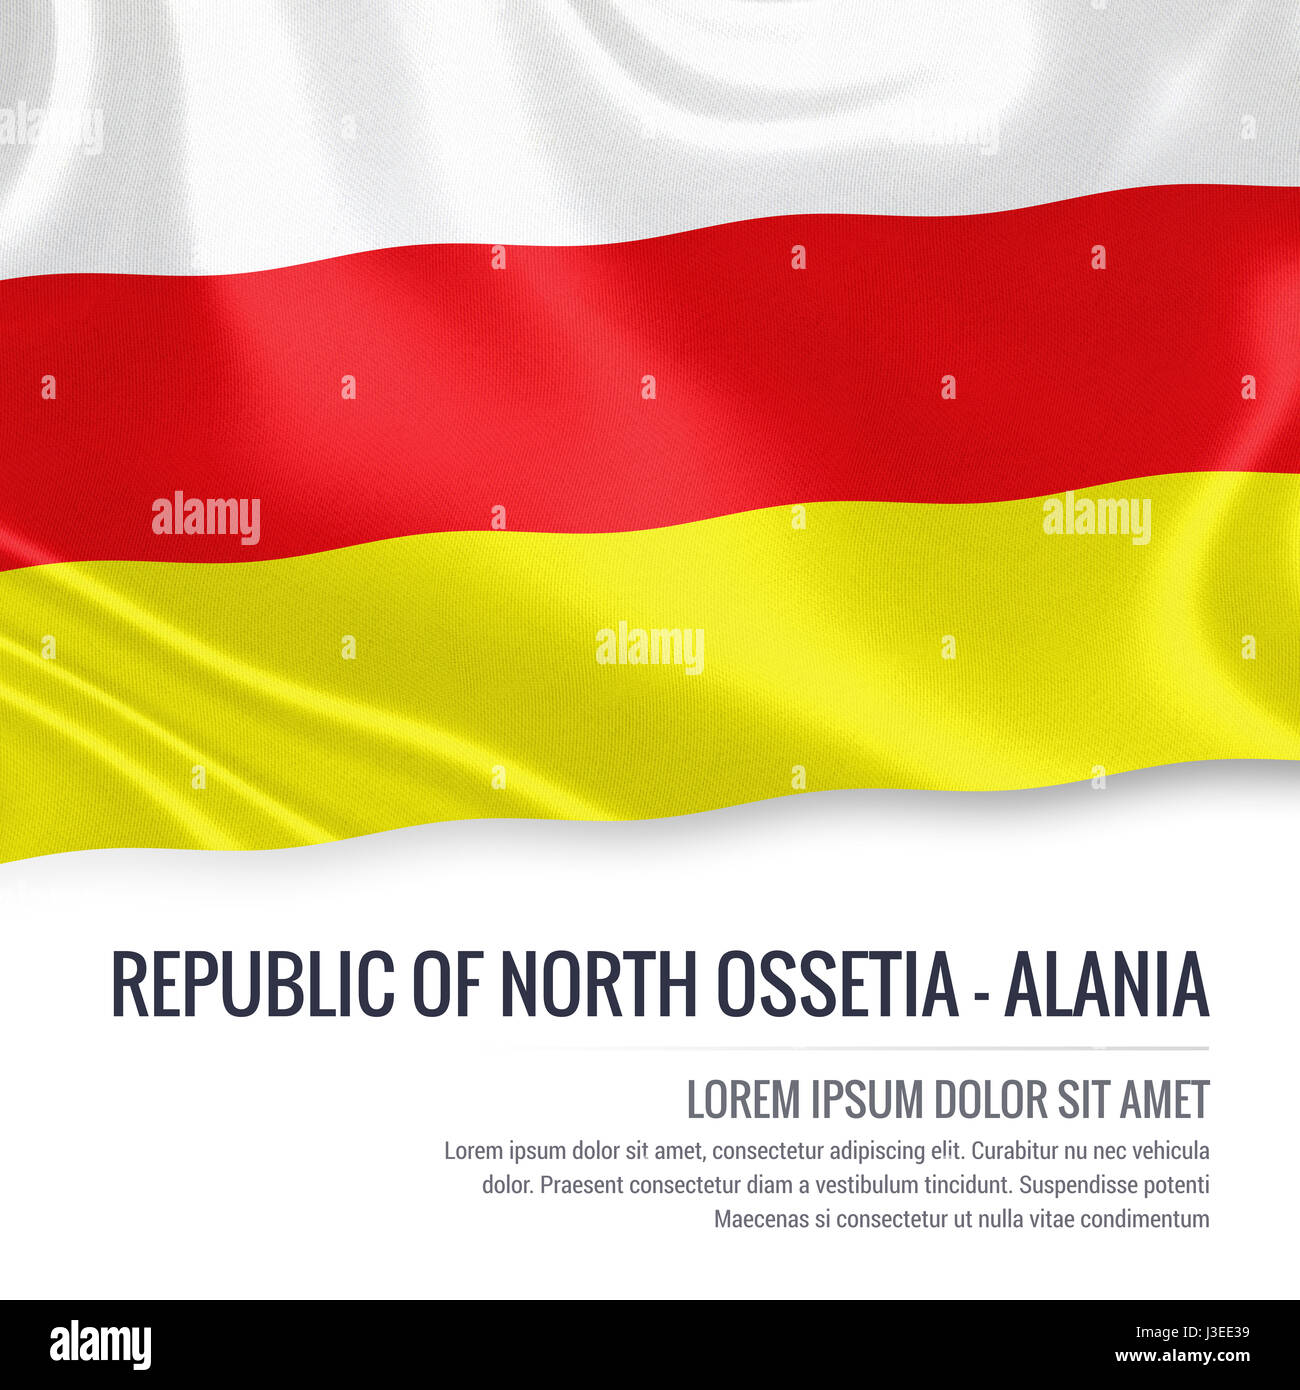 Russian state Republic of North Ossetia-Alania flag waving on an isolated white background. State name and the text - Stock Image